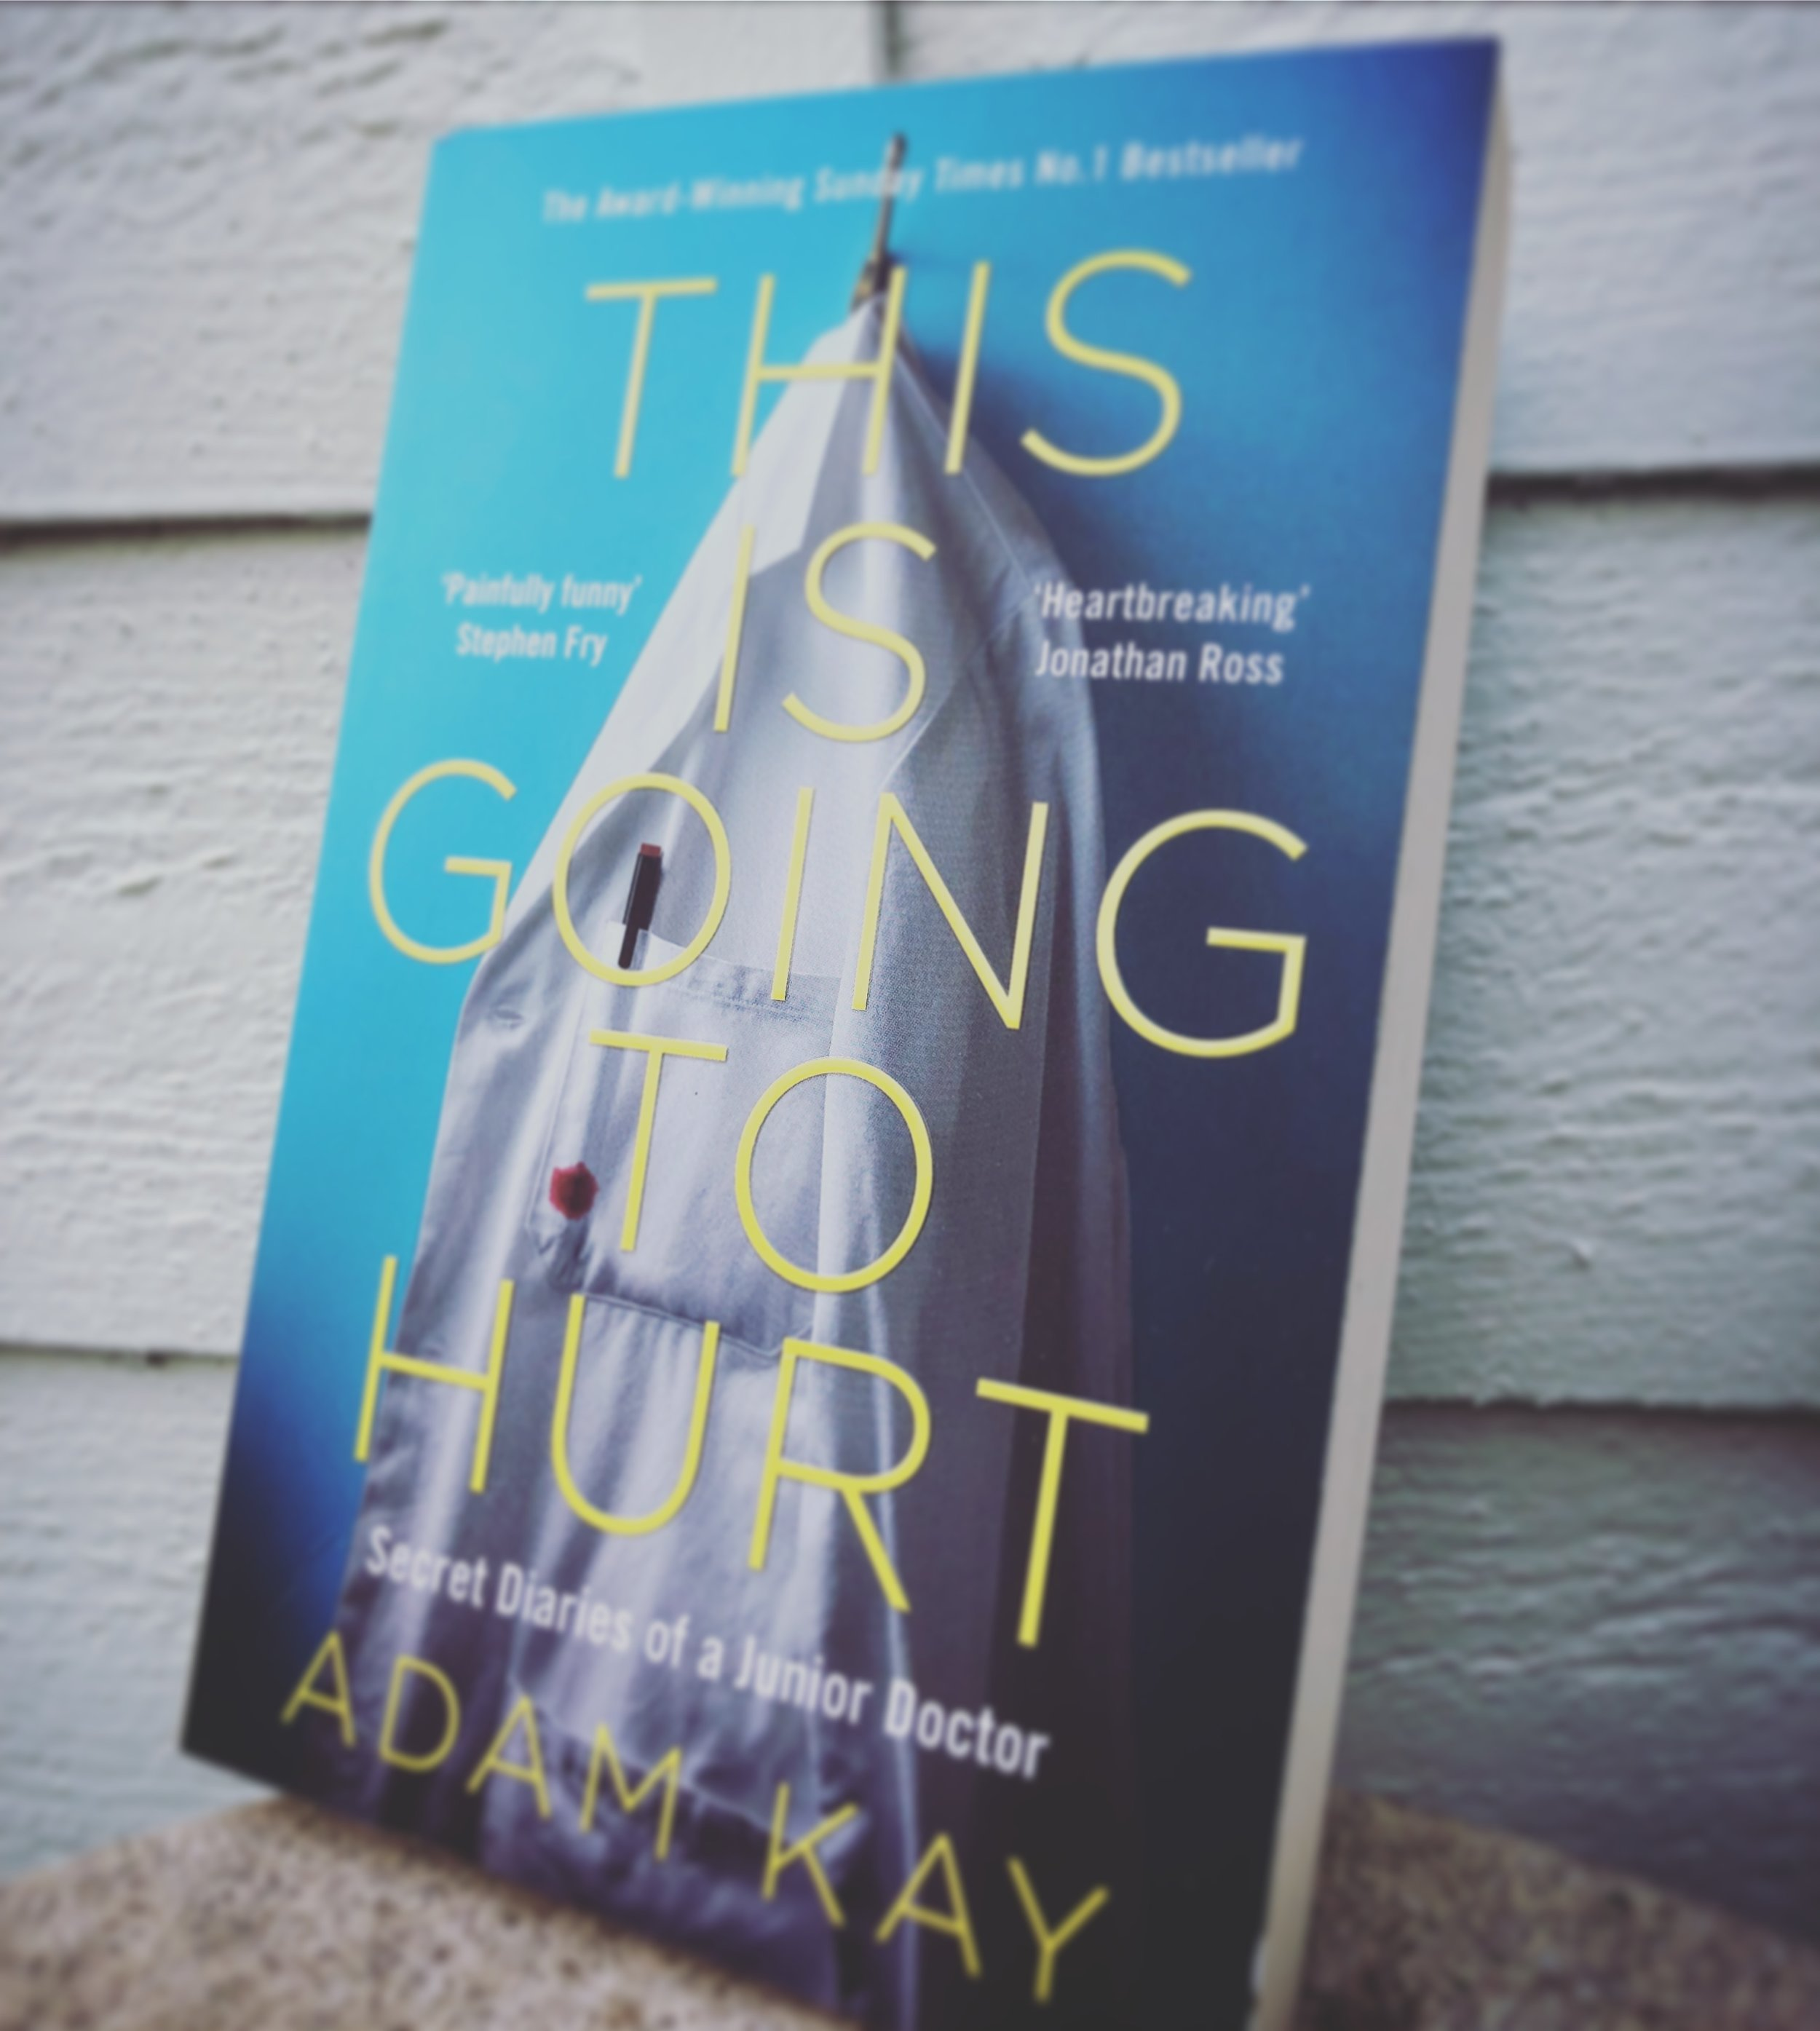 THIS IS GOING TO HURT: ADAM KAY